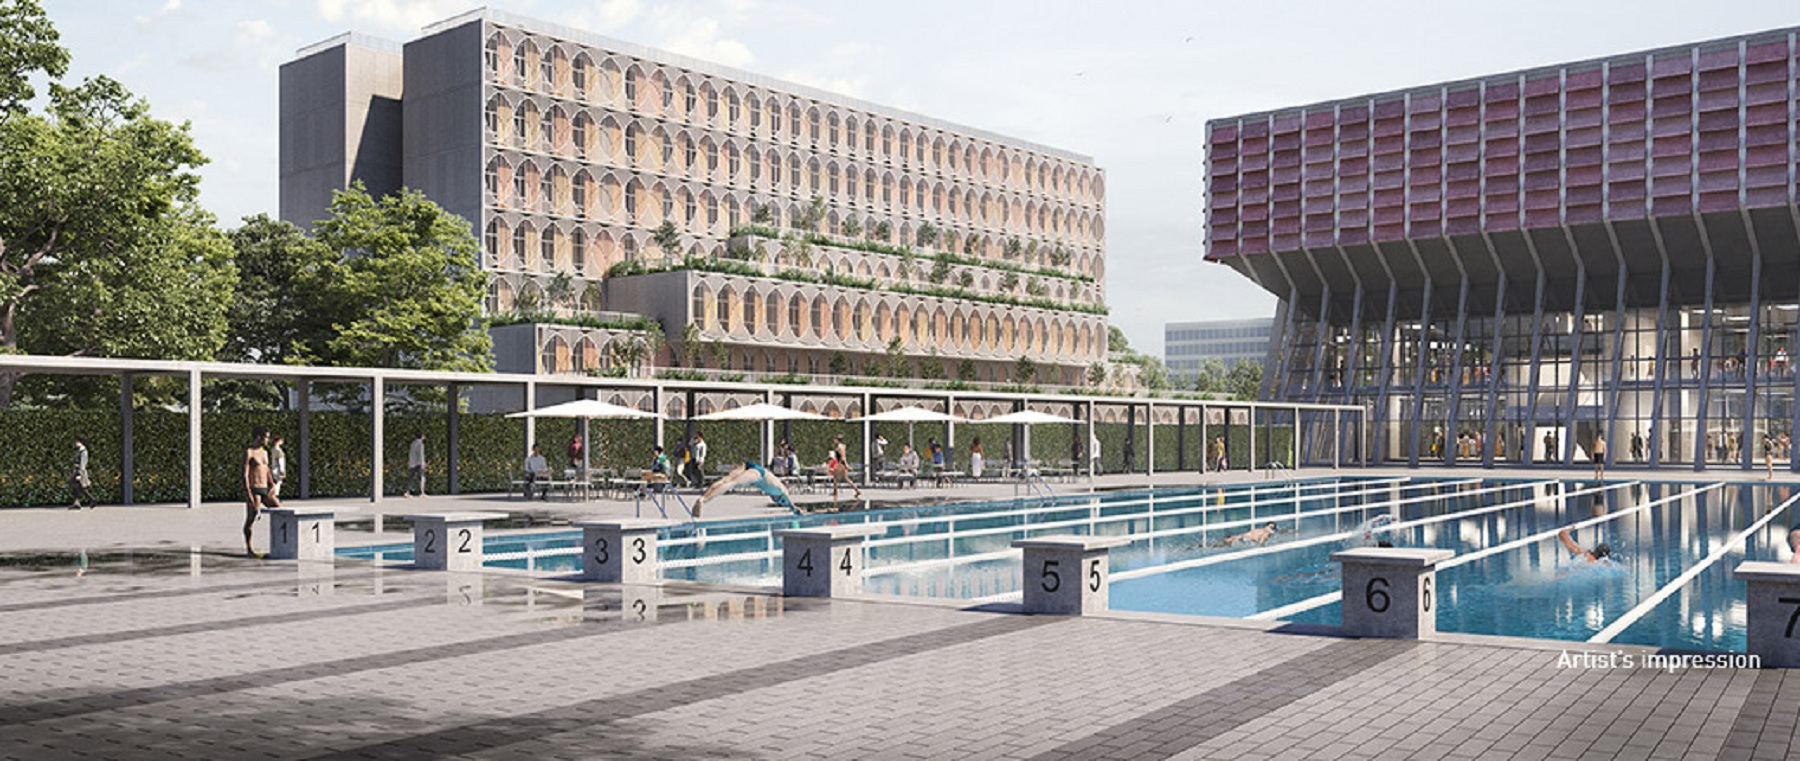 lodha prime square project amenities features7